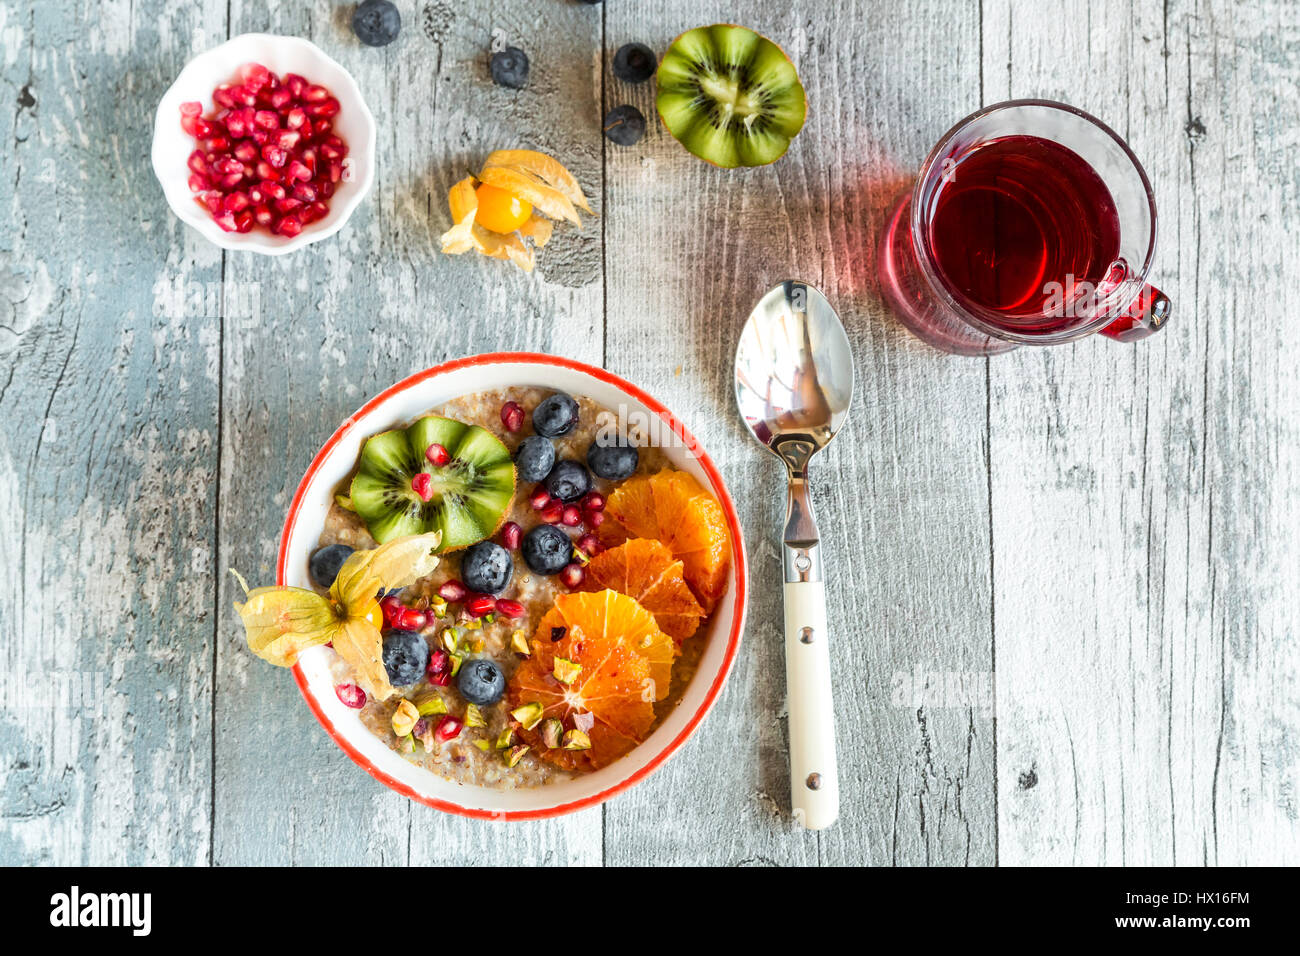 Superfood breakfast with porridge, amaranth, various fruits and pistachios - Stock Image